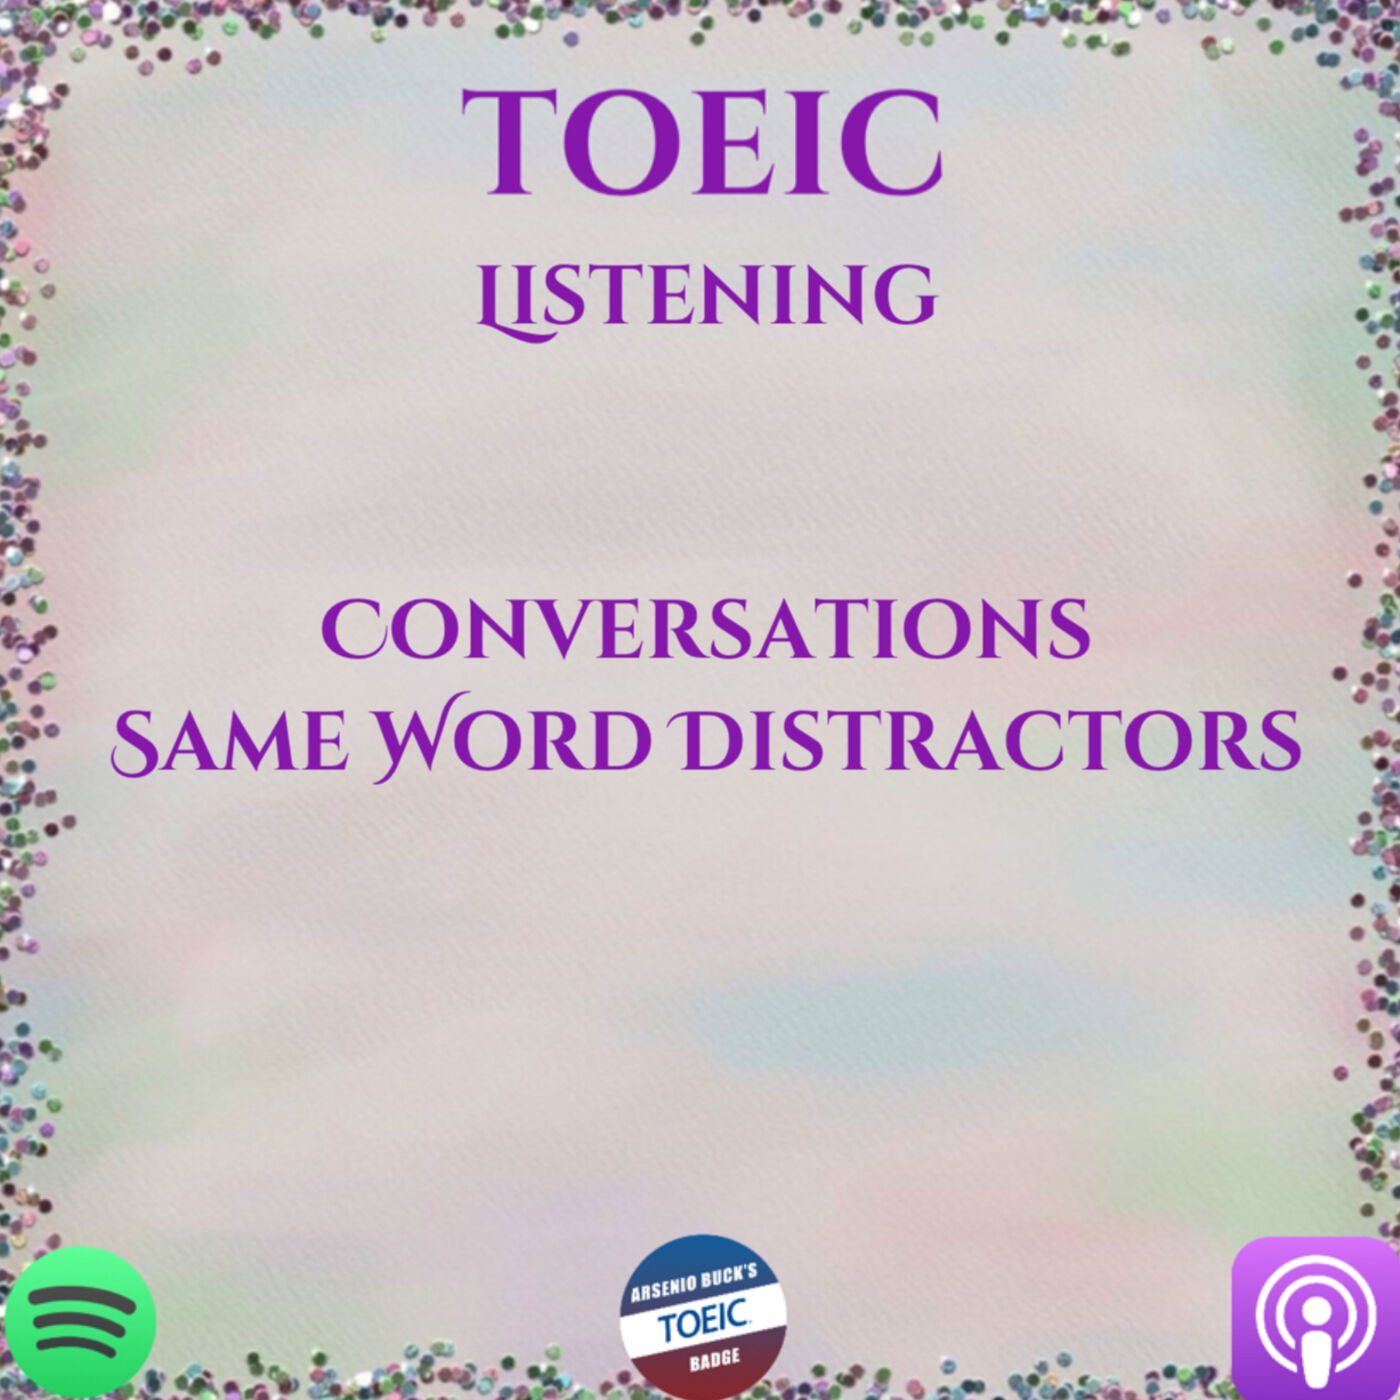 TOEIC | Listening | Conversations | Same Word Distractors